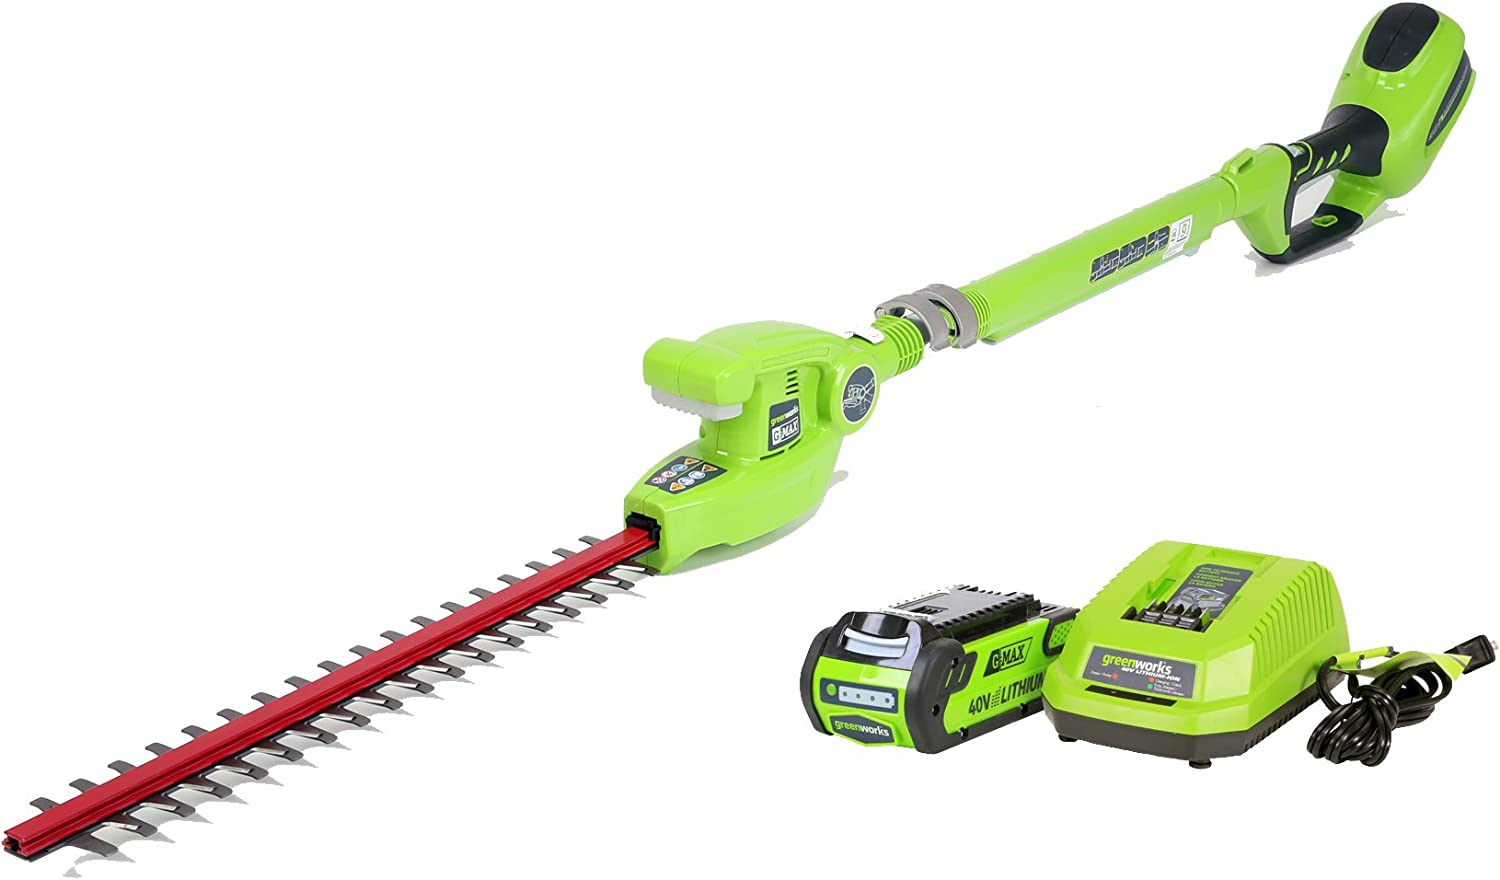 6. Greenworks Cordless Pole Hedge Trimmer